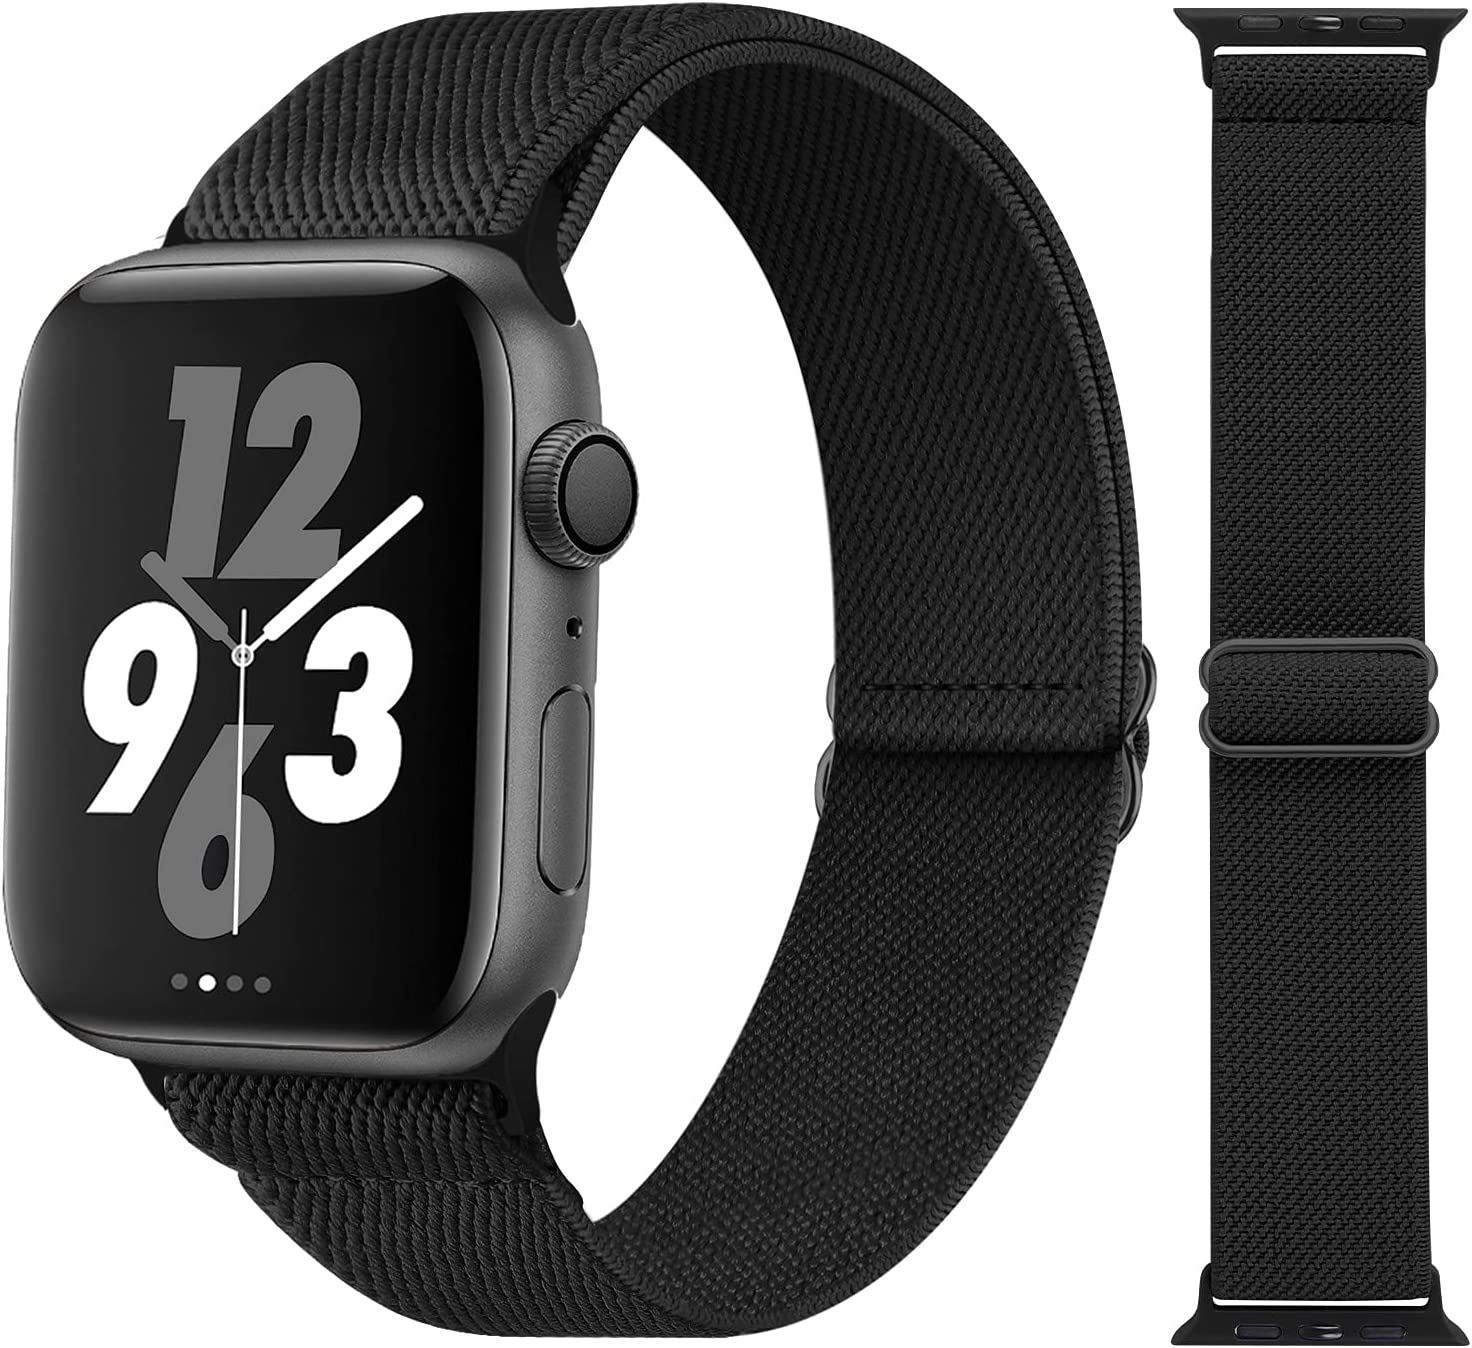 Acrbiutu Stretchy Solo Loop Nylon Bands Compatible with Apple Watch 38mm 40mm 42mm 44mm, Adjustable Braided Stretch Elastics Strap for iWatch Series 6/5/4/3/2/1 SE, Black 38mm/40mm